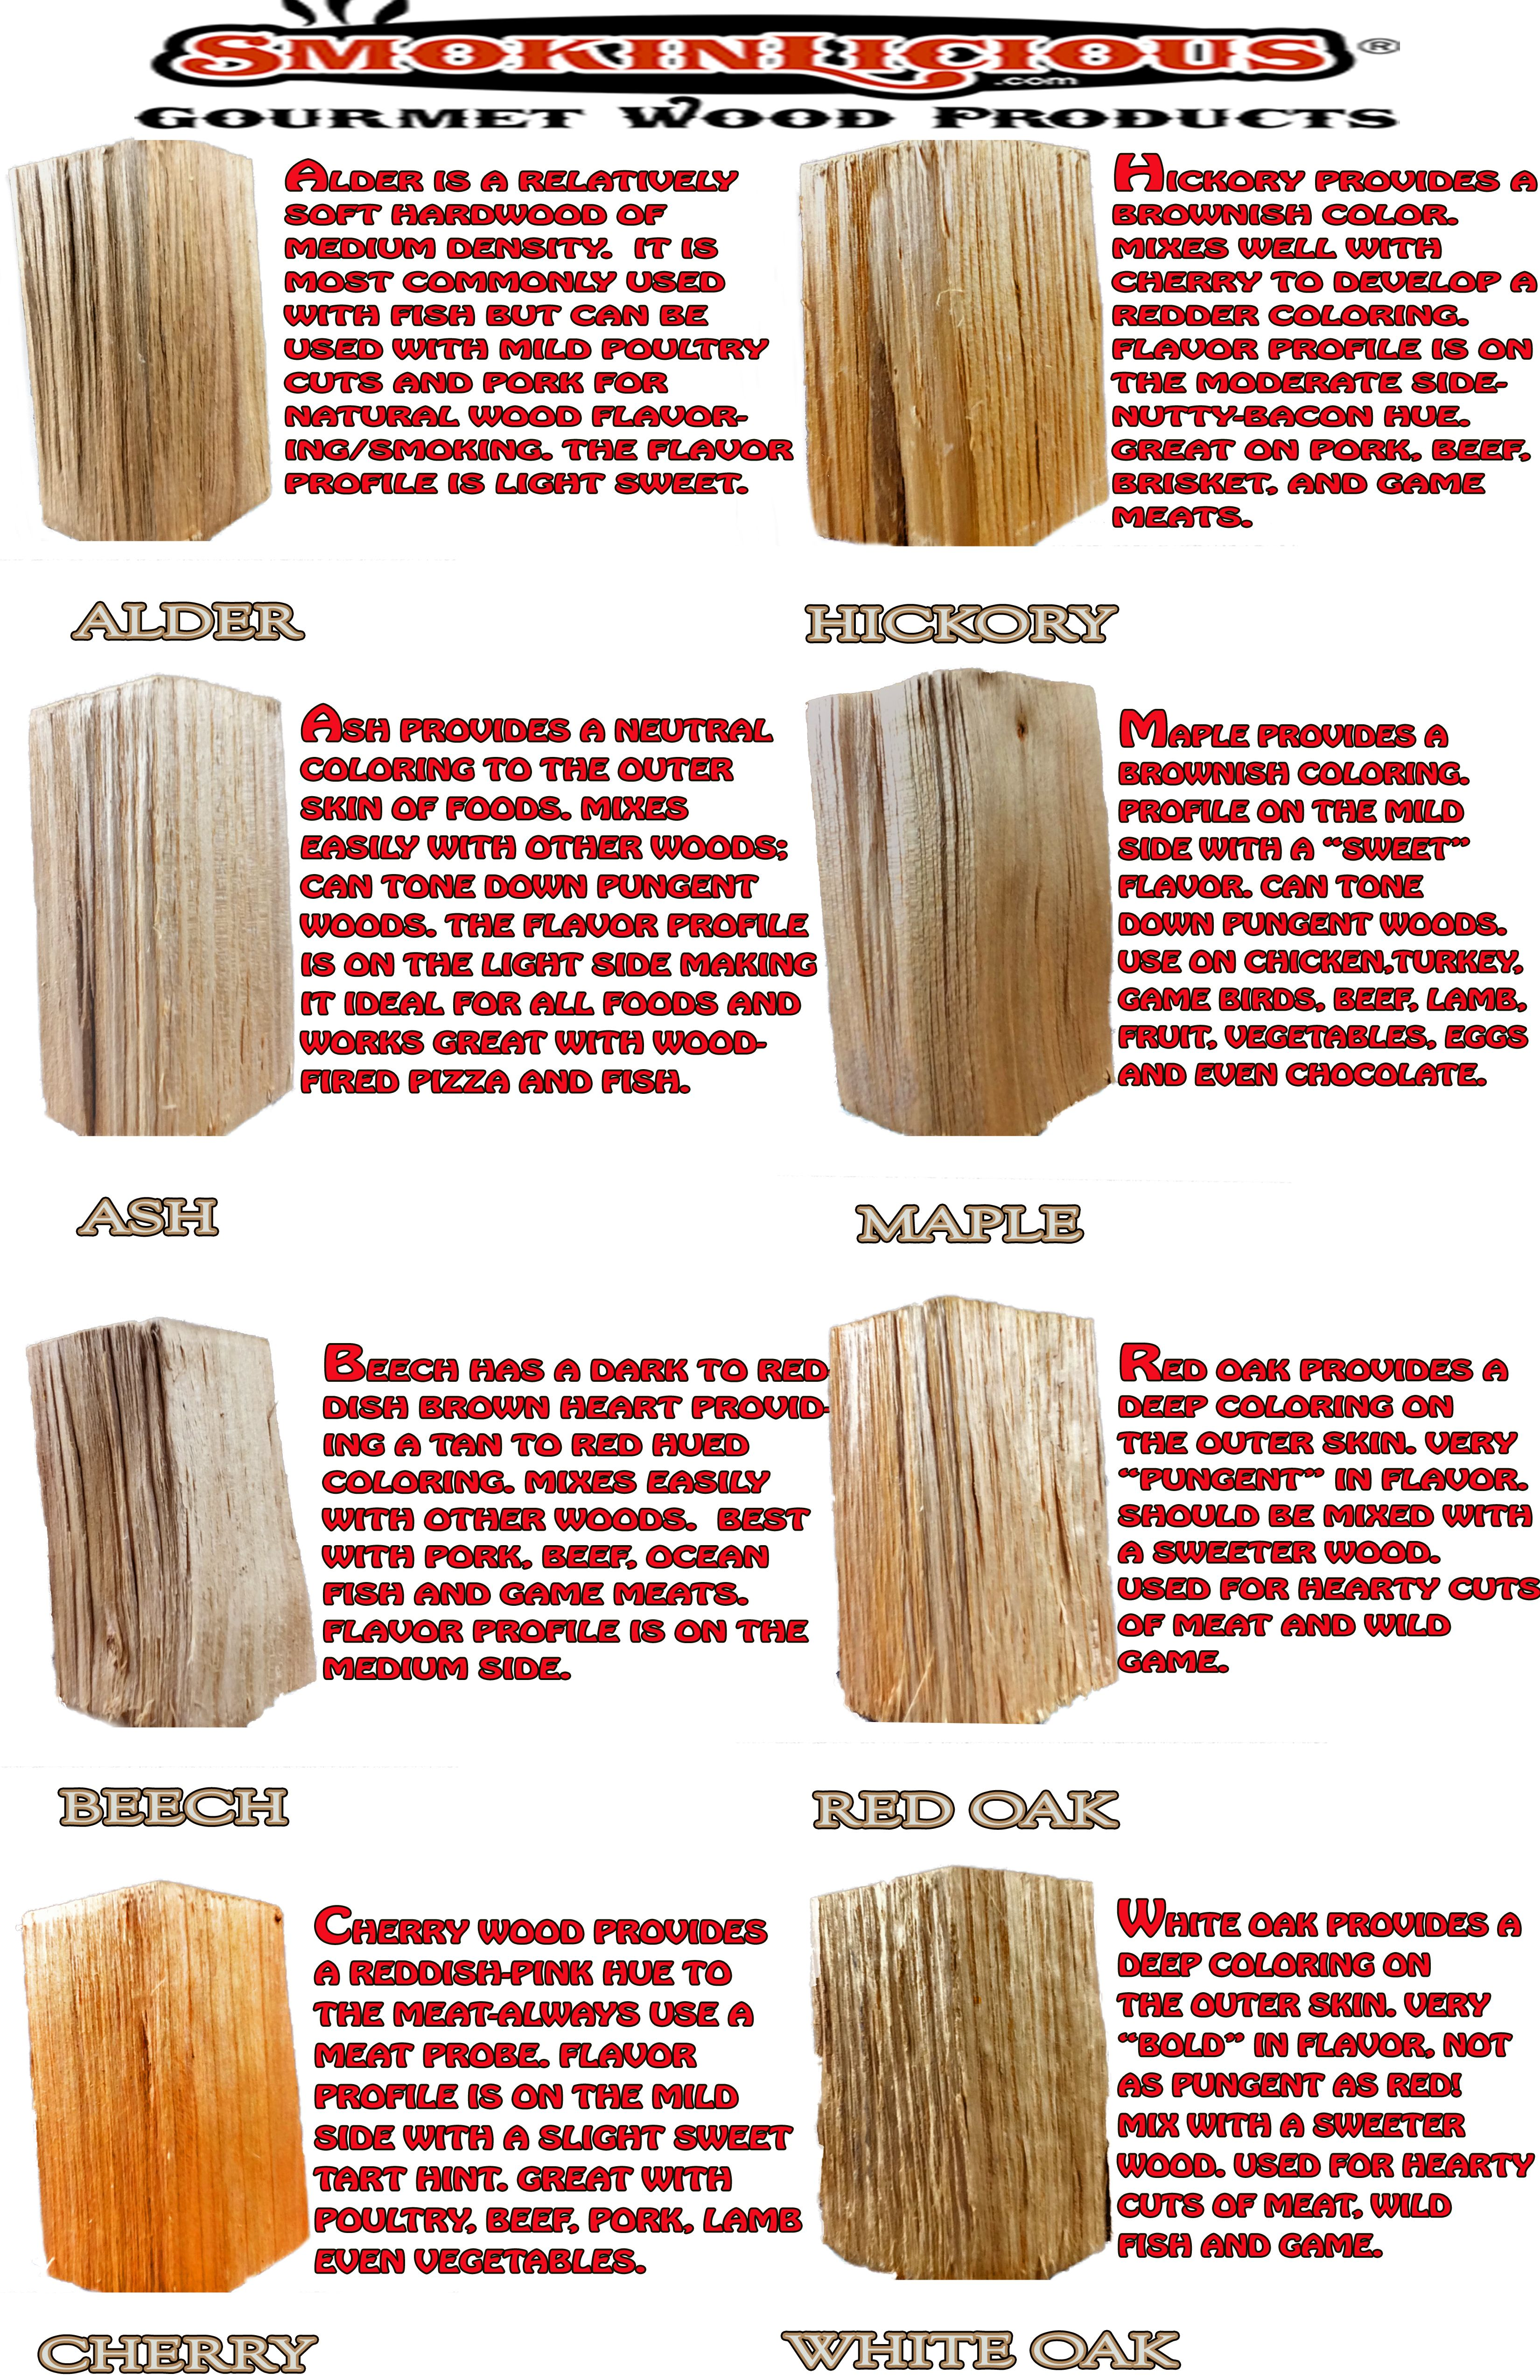 Smoking Wood Chart By Smokinlicious 174 This Shows The Grain